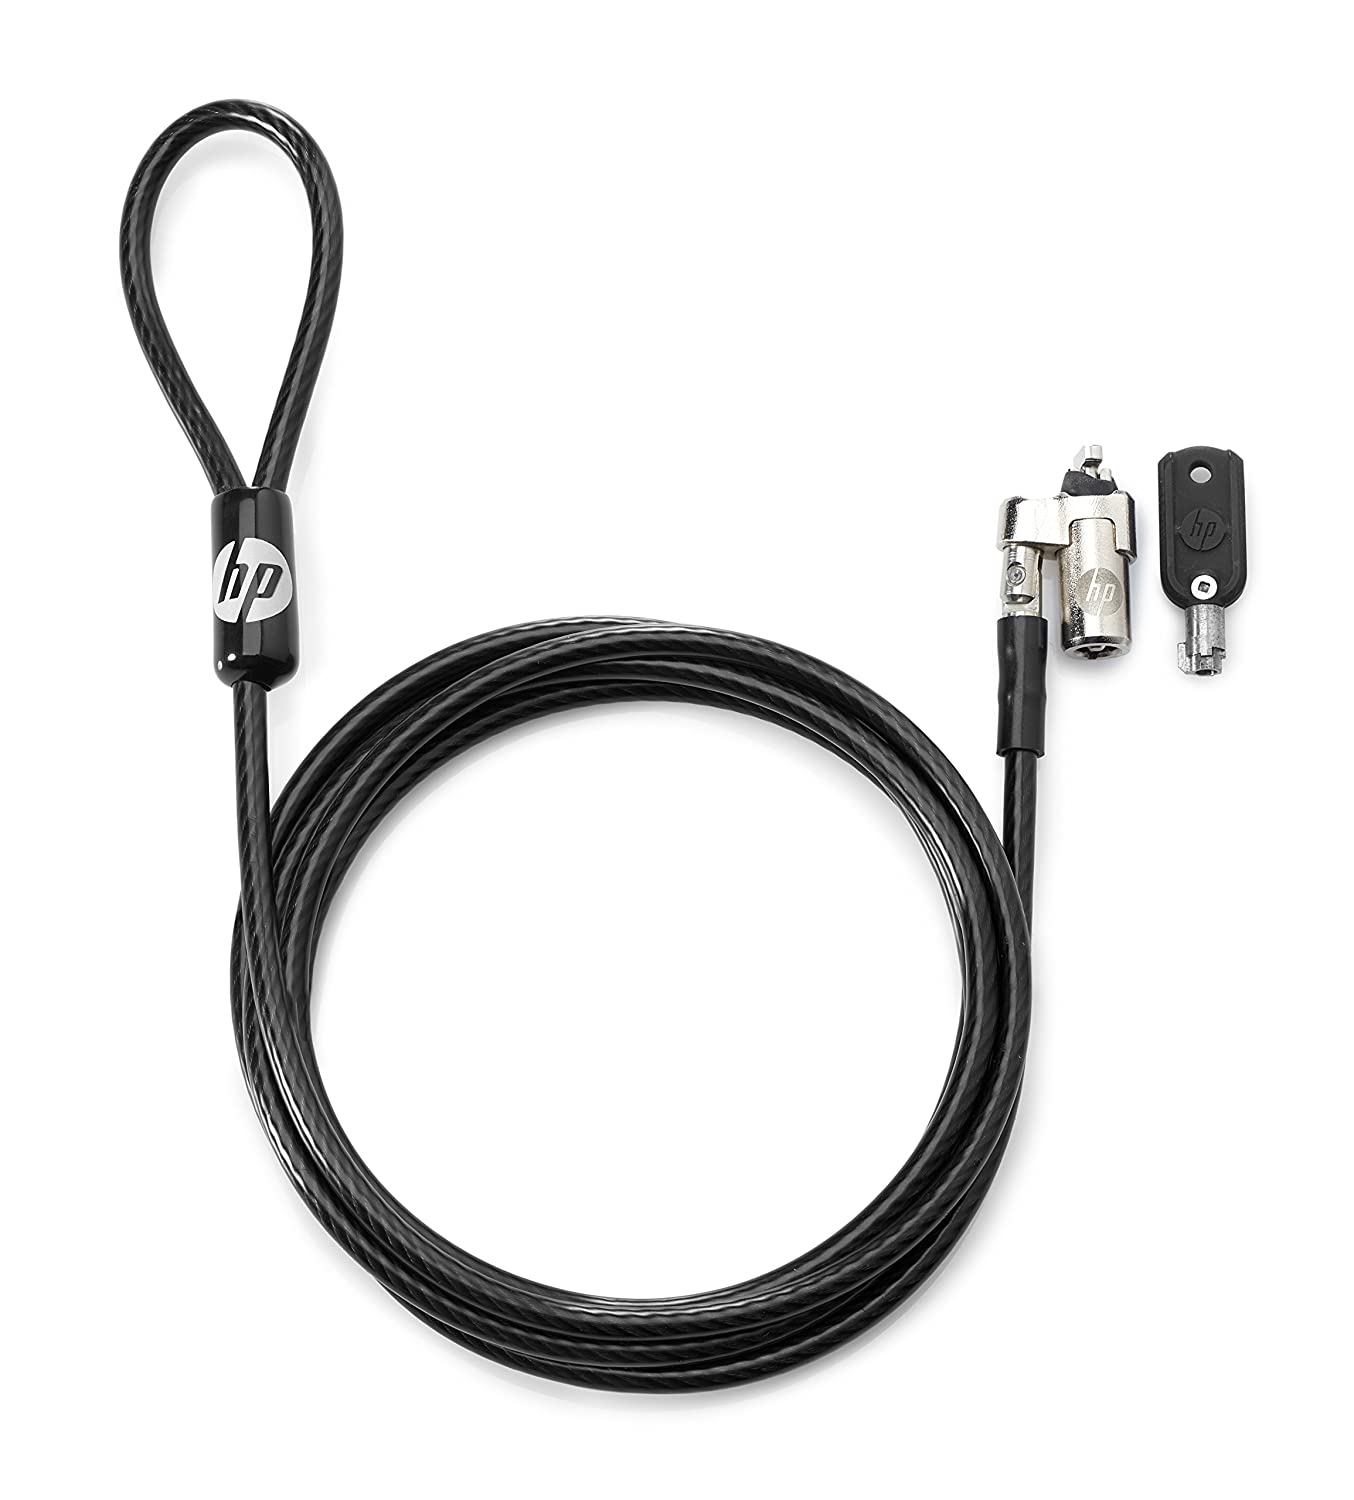 HP Bloqueo de Cable con Llave de 10 mm - Cable antirrobo (Llave ...